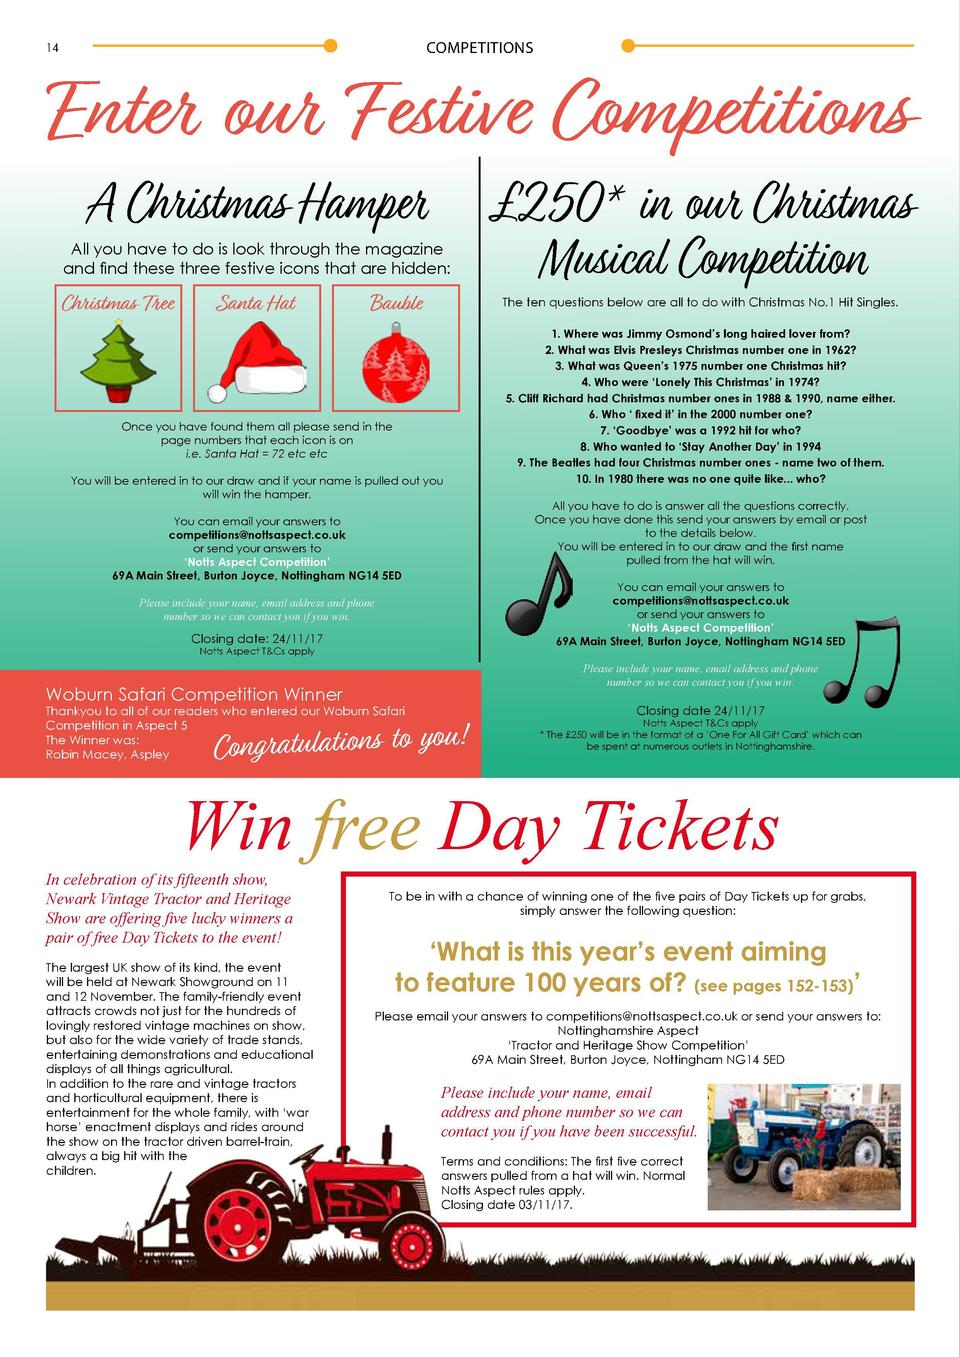 COMPETITIONS  14  INTERVIEW  Enter our Festive Competitions A Christmas Hamper All you have to do is look through the maga...